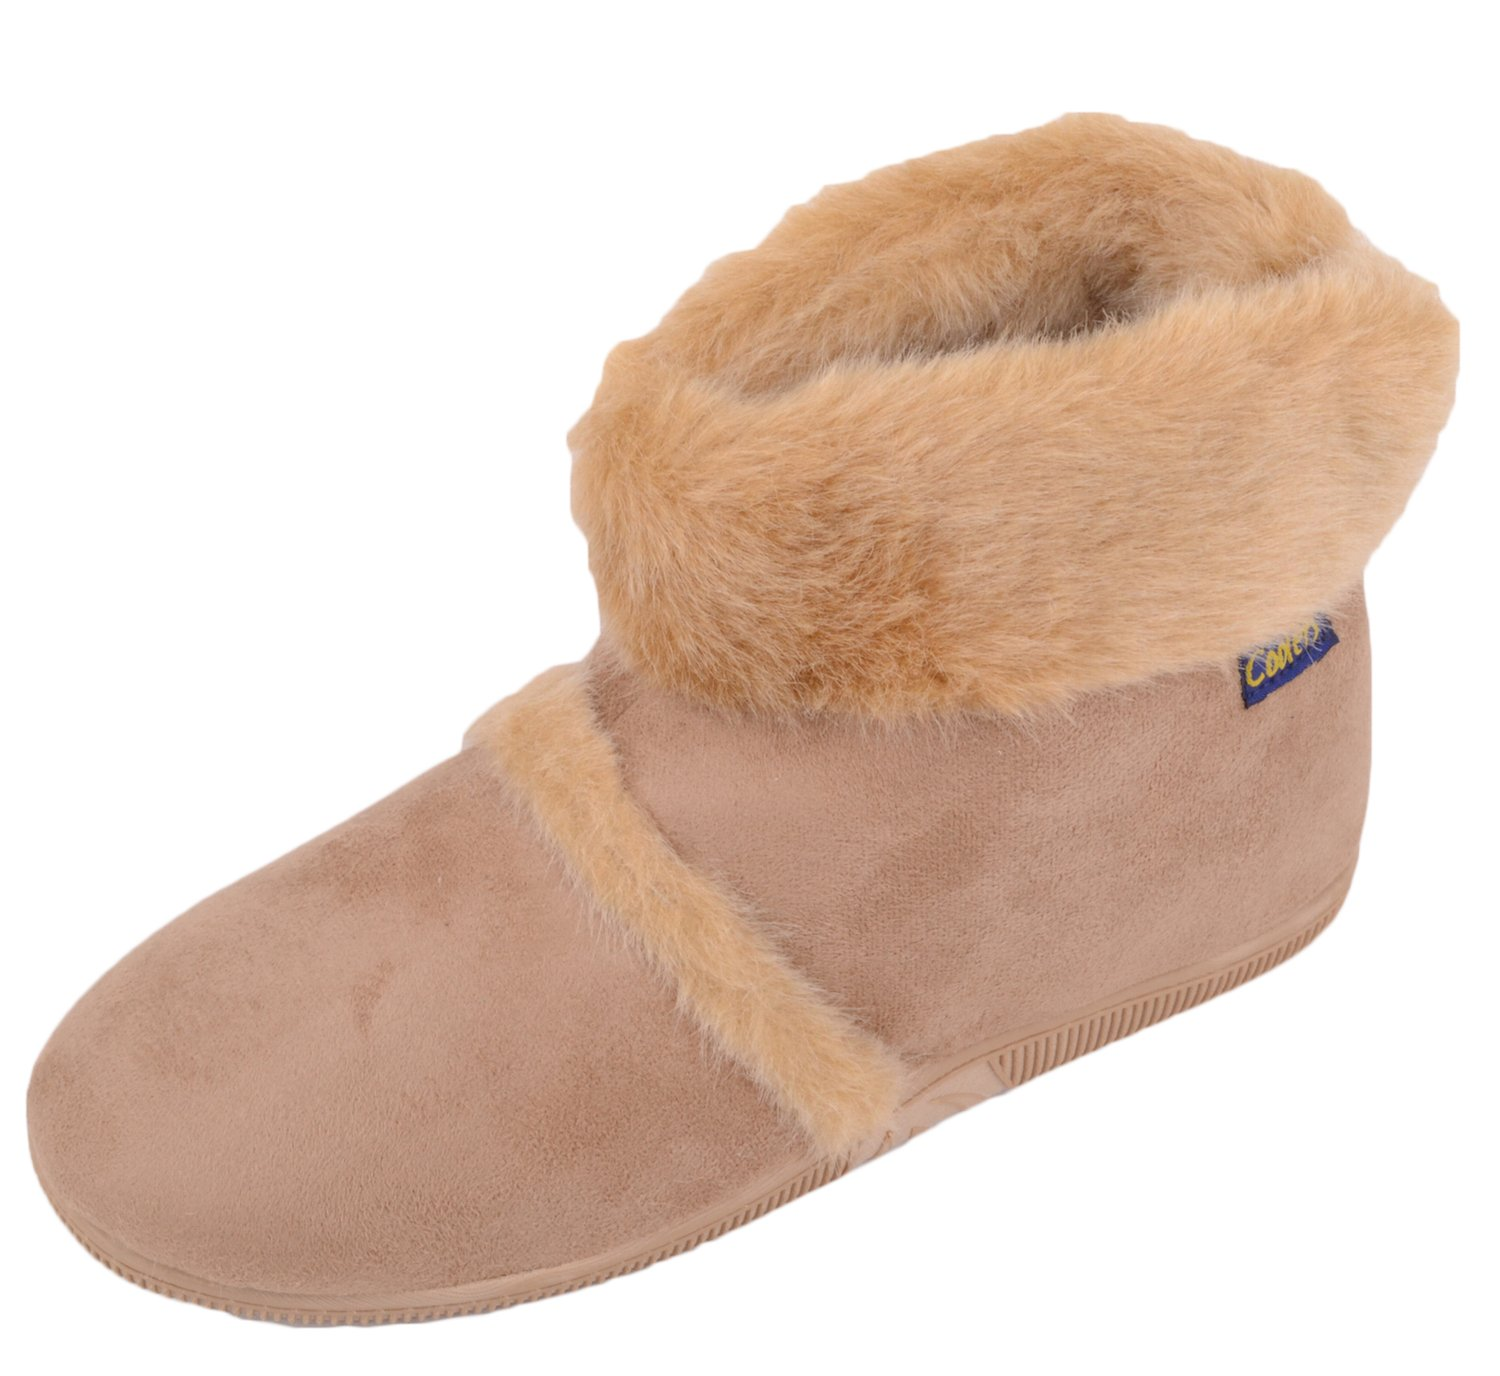 ABSOLUTE FOOTWEAR Mens Slip On Slippers/Boots/Indoor Shoes with Warm Faux Fur Inners - Beige - US 7